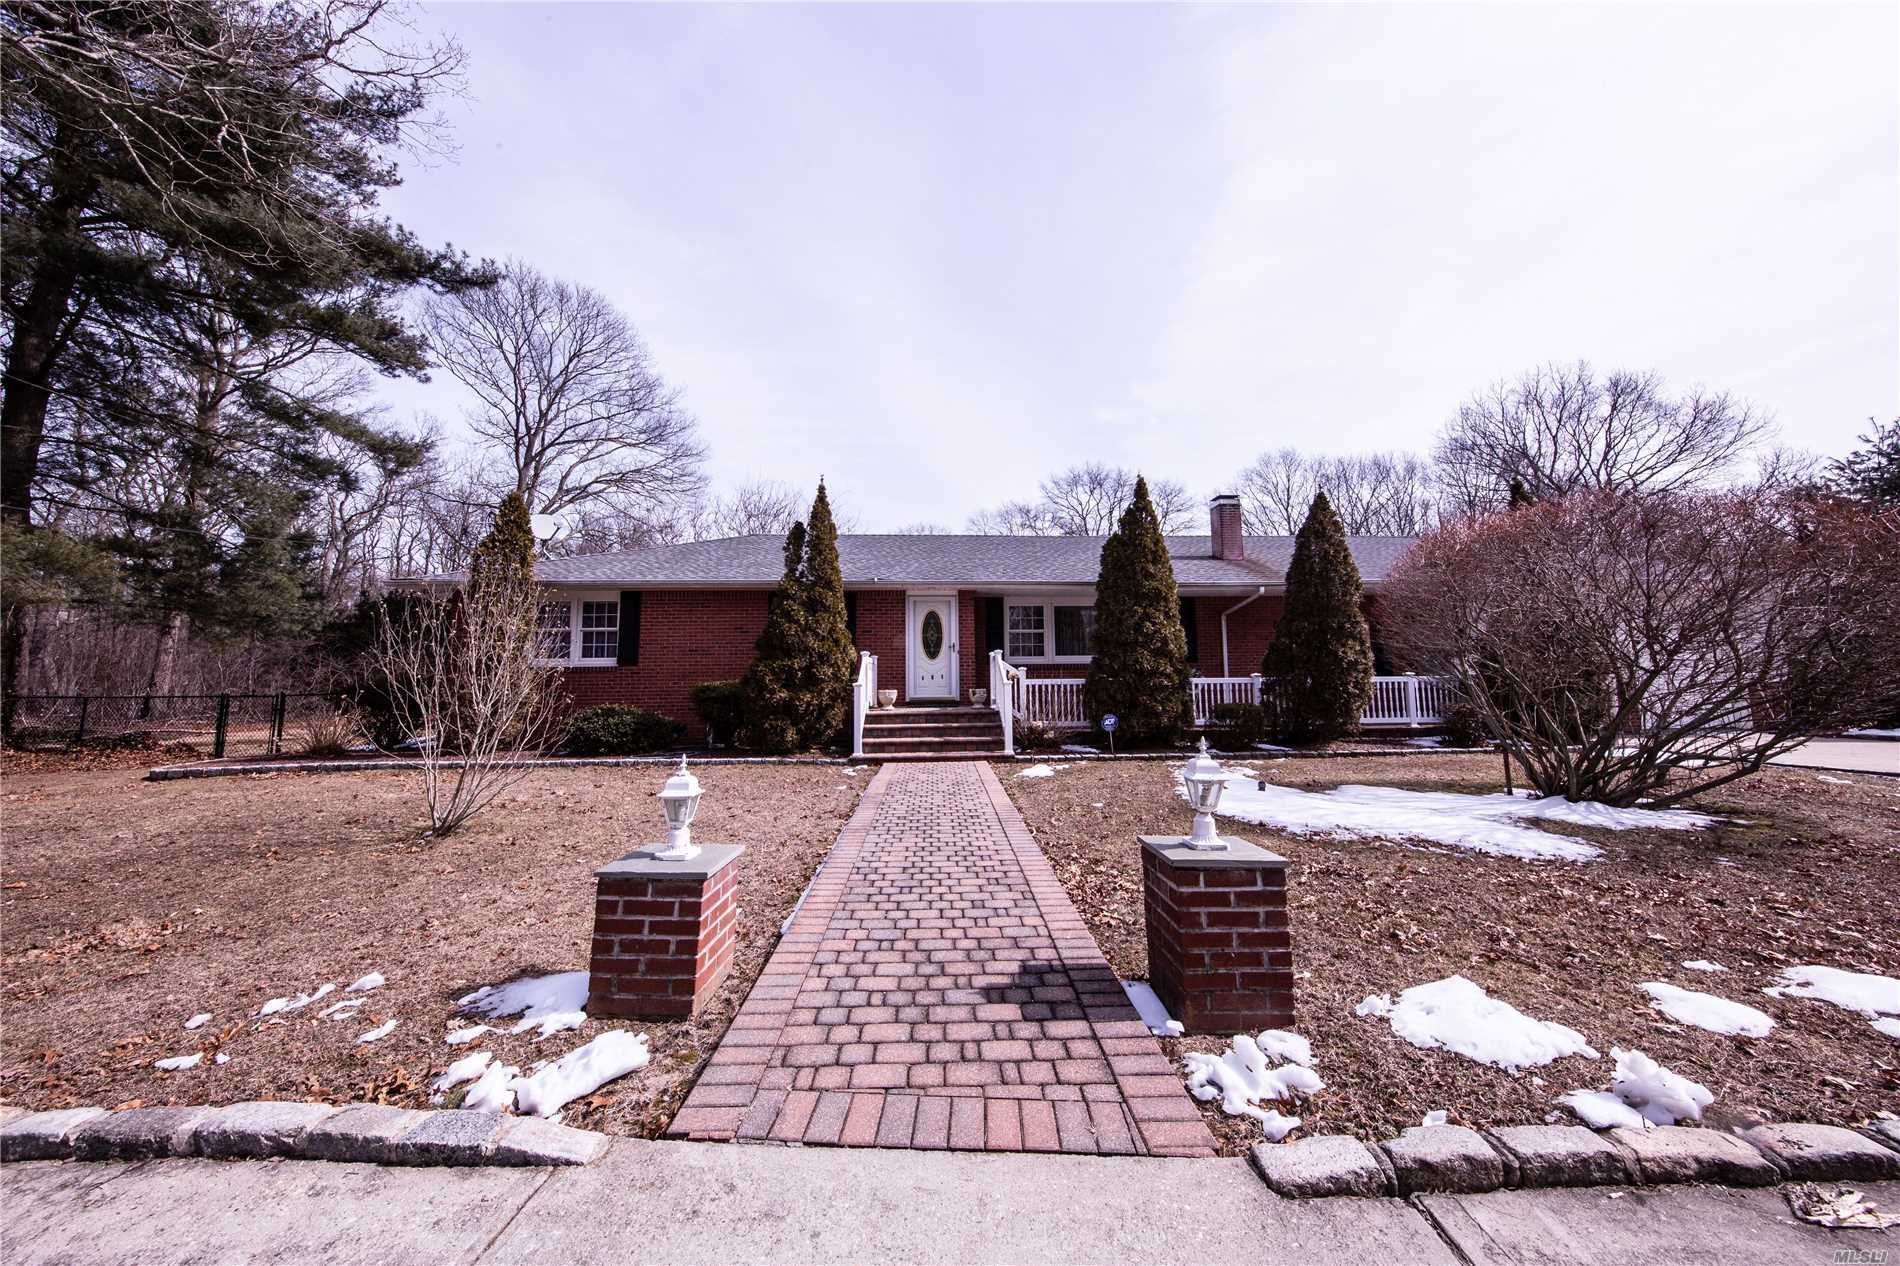 IMMACULATE 3 BEDROOM 2.5 BATH HOME SET ON 2 BEAUTIFUL-FLAT ACRES. FINISHED BASEMENT HAS ROOM FOR MOM . ENTERTAIN IN THE SUN ROOM AND MAKE THE MOST OF YOUR HUGE BACKYARD! THIS HOUSE IS A MUST SEE! HORSE PROPERTY!